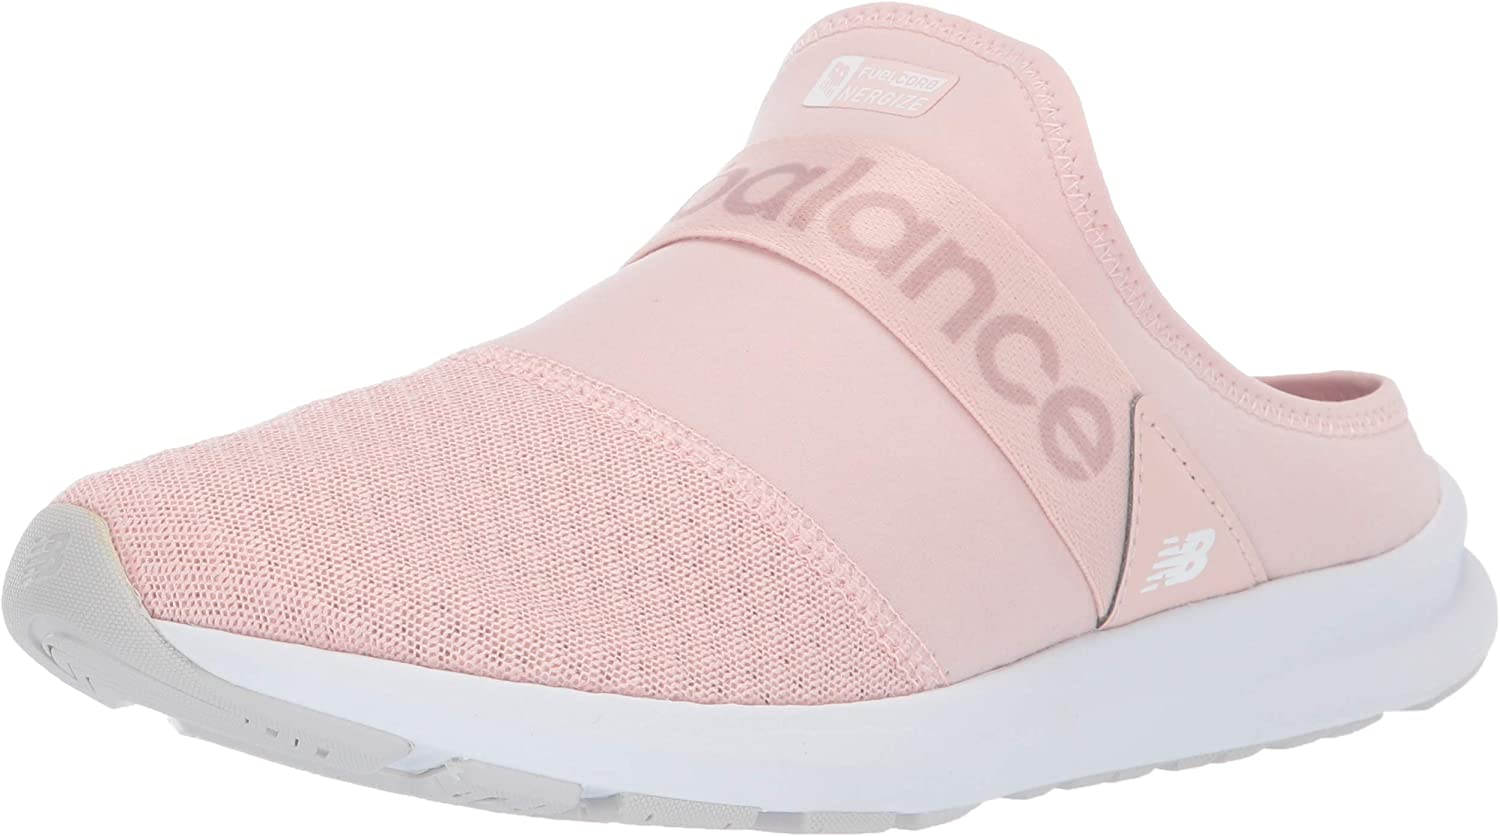 New Balance Women's Nergize V1 FuelCore Sneaker, Oyster Pink Mist, 12 B US